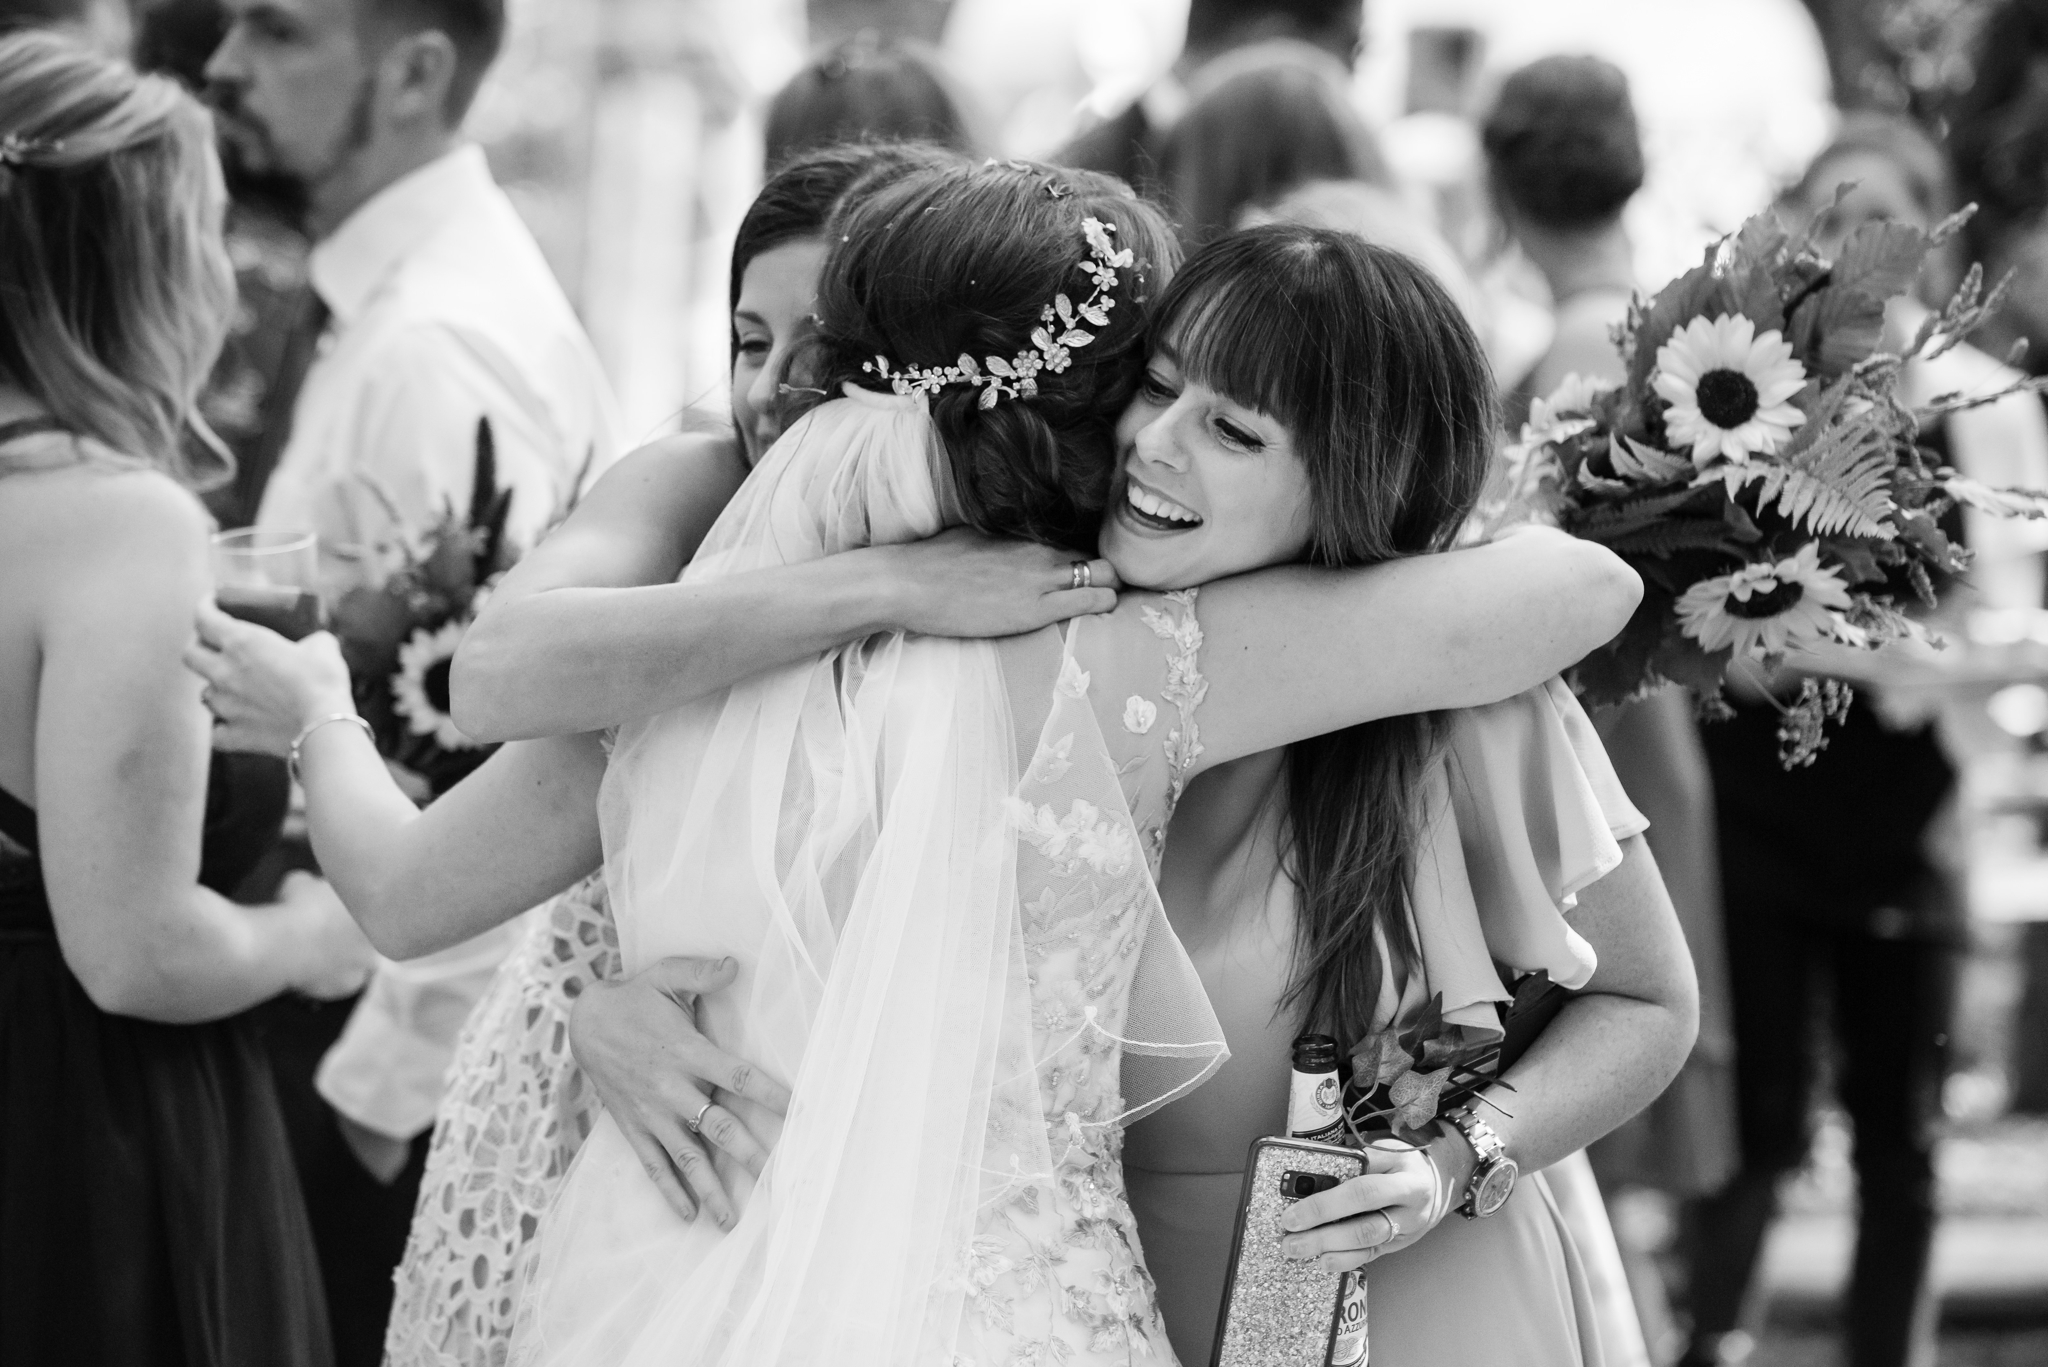 Guests congratulate the Bride